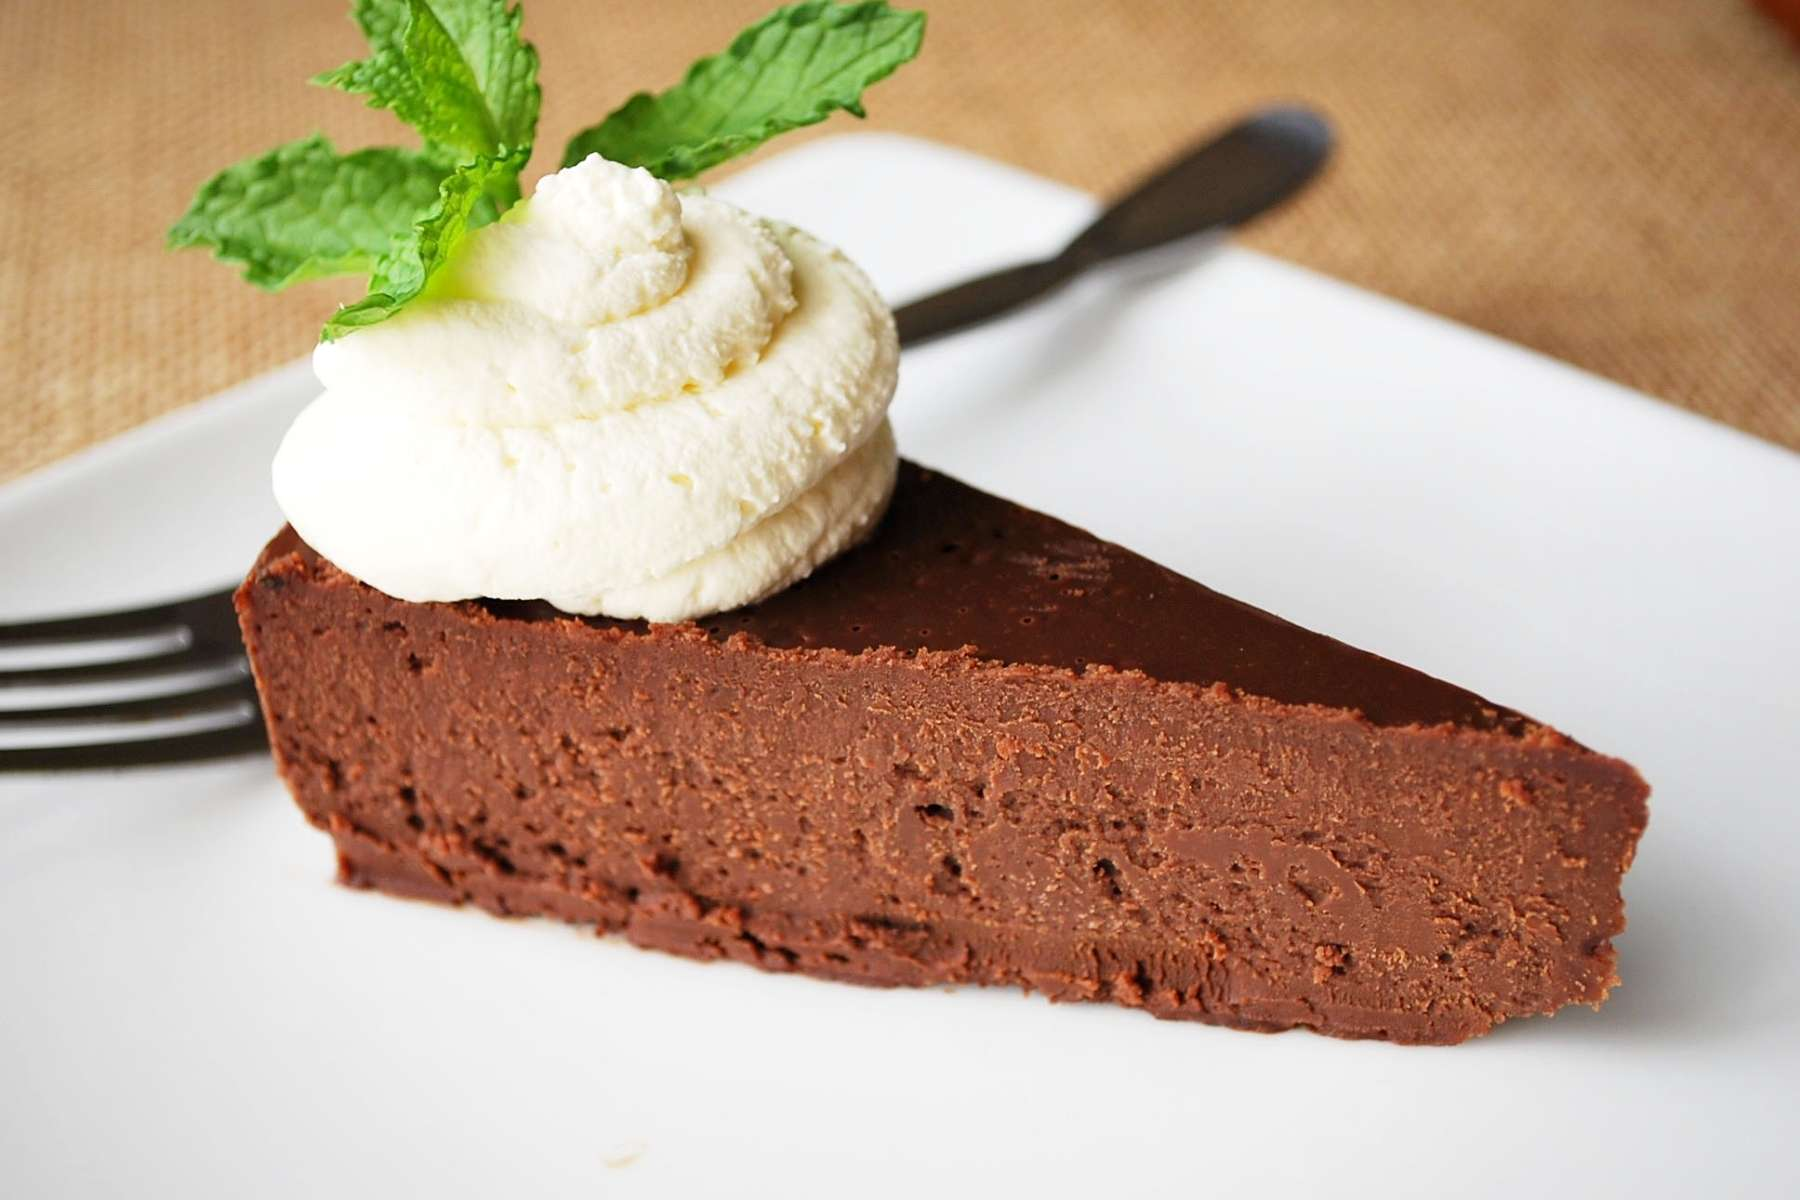 slice of chocolate cake topped with whipped cream and mint on a plate with a fork